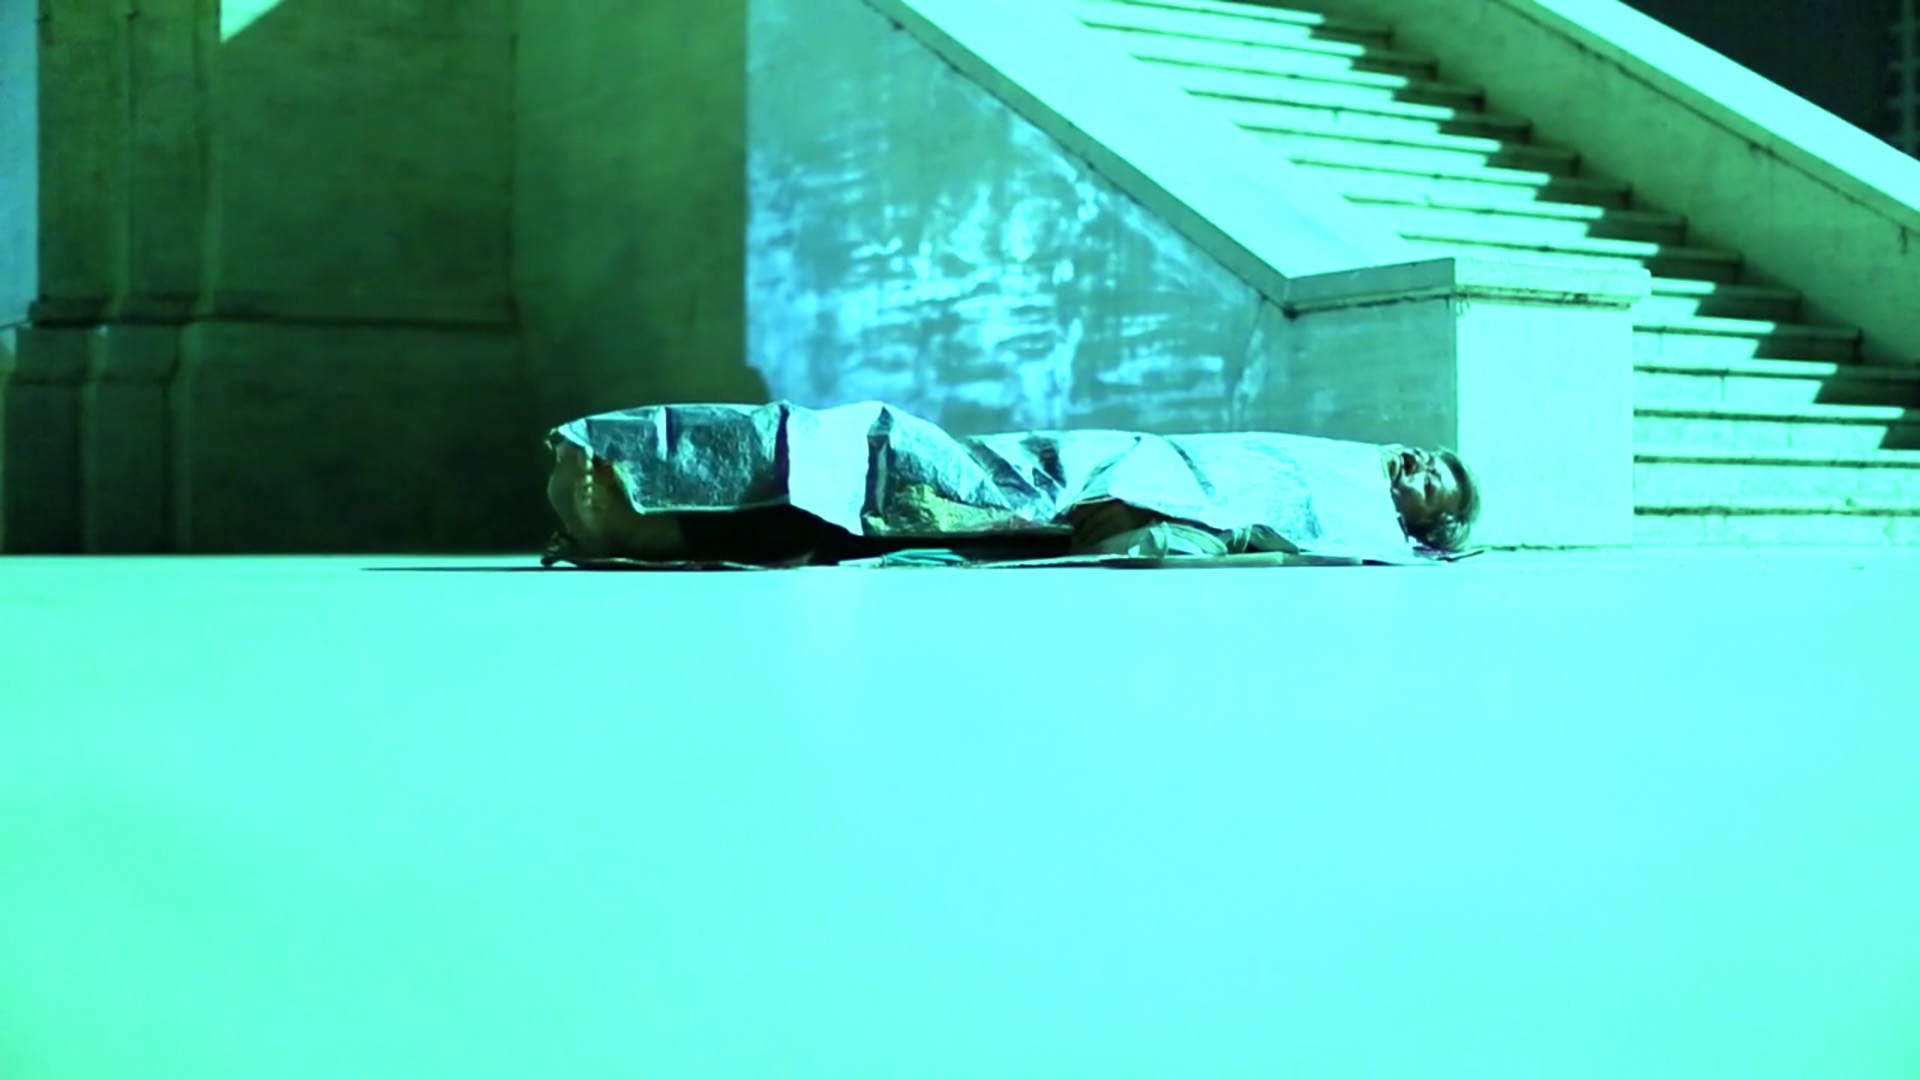 On an empty street bathed in green light, a man lies on the ground under a reflective emergency blanket in still from Blue and Red (2014) by Zhou Tao